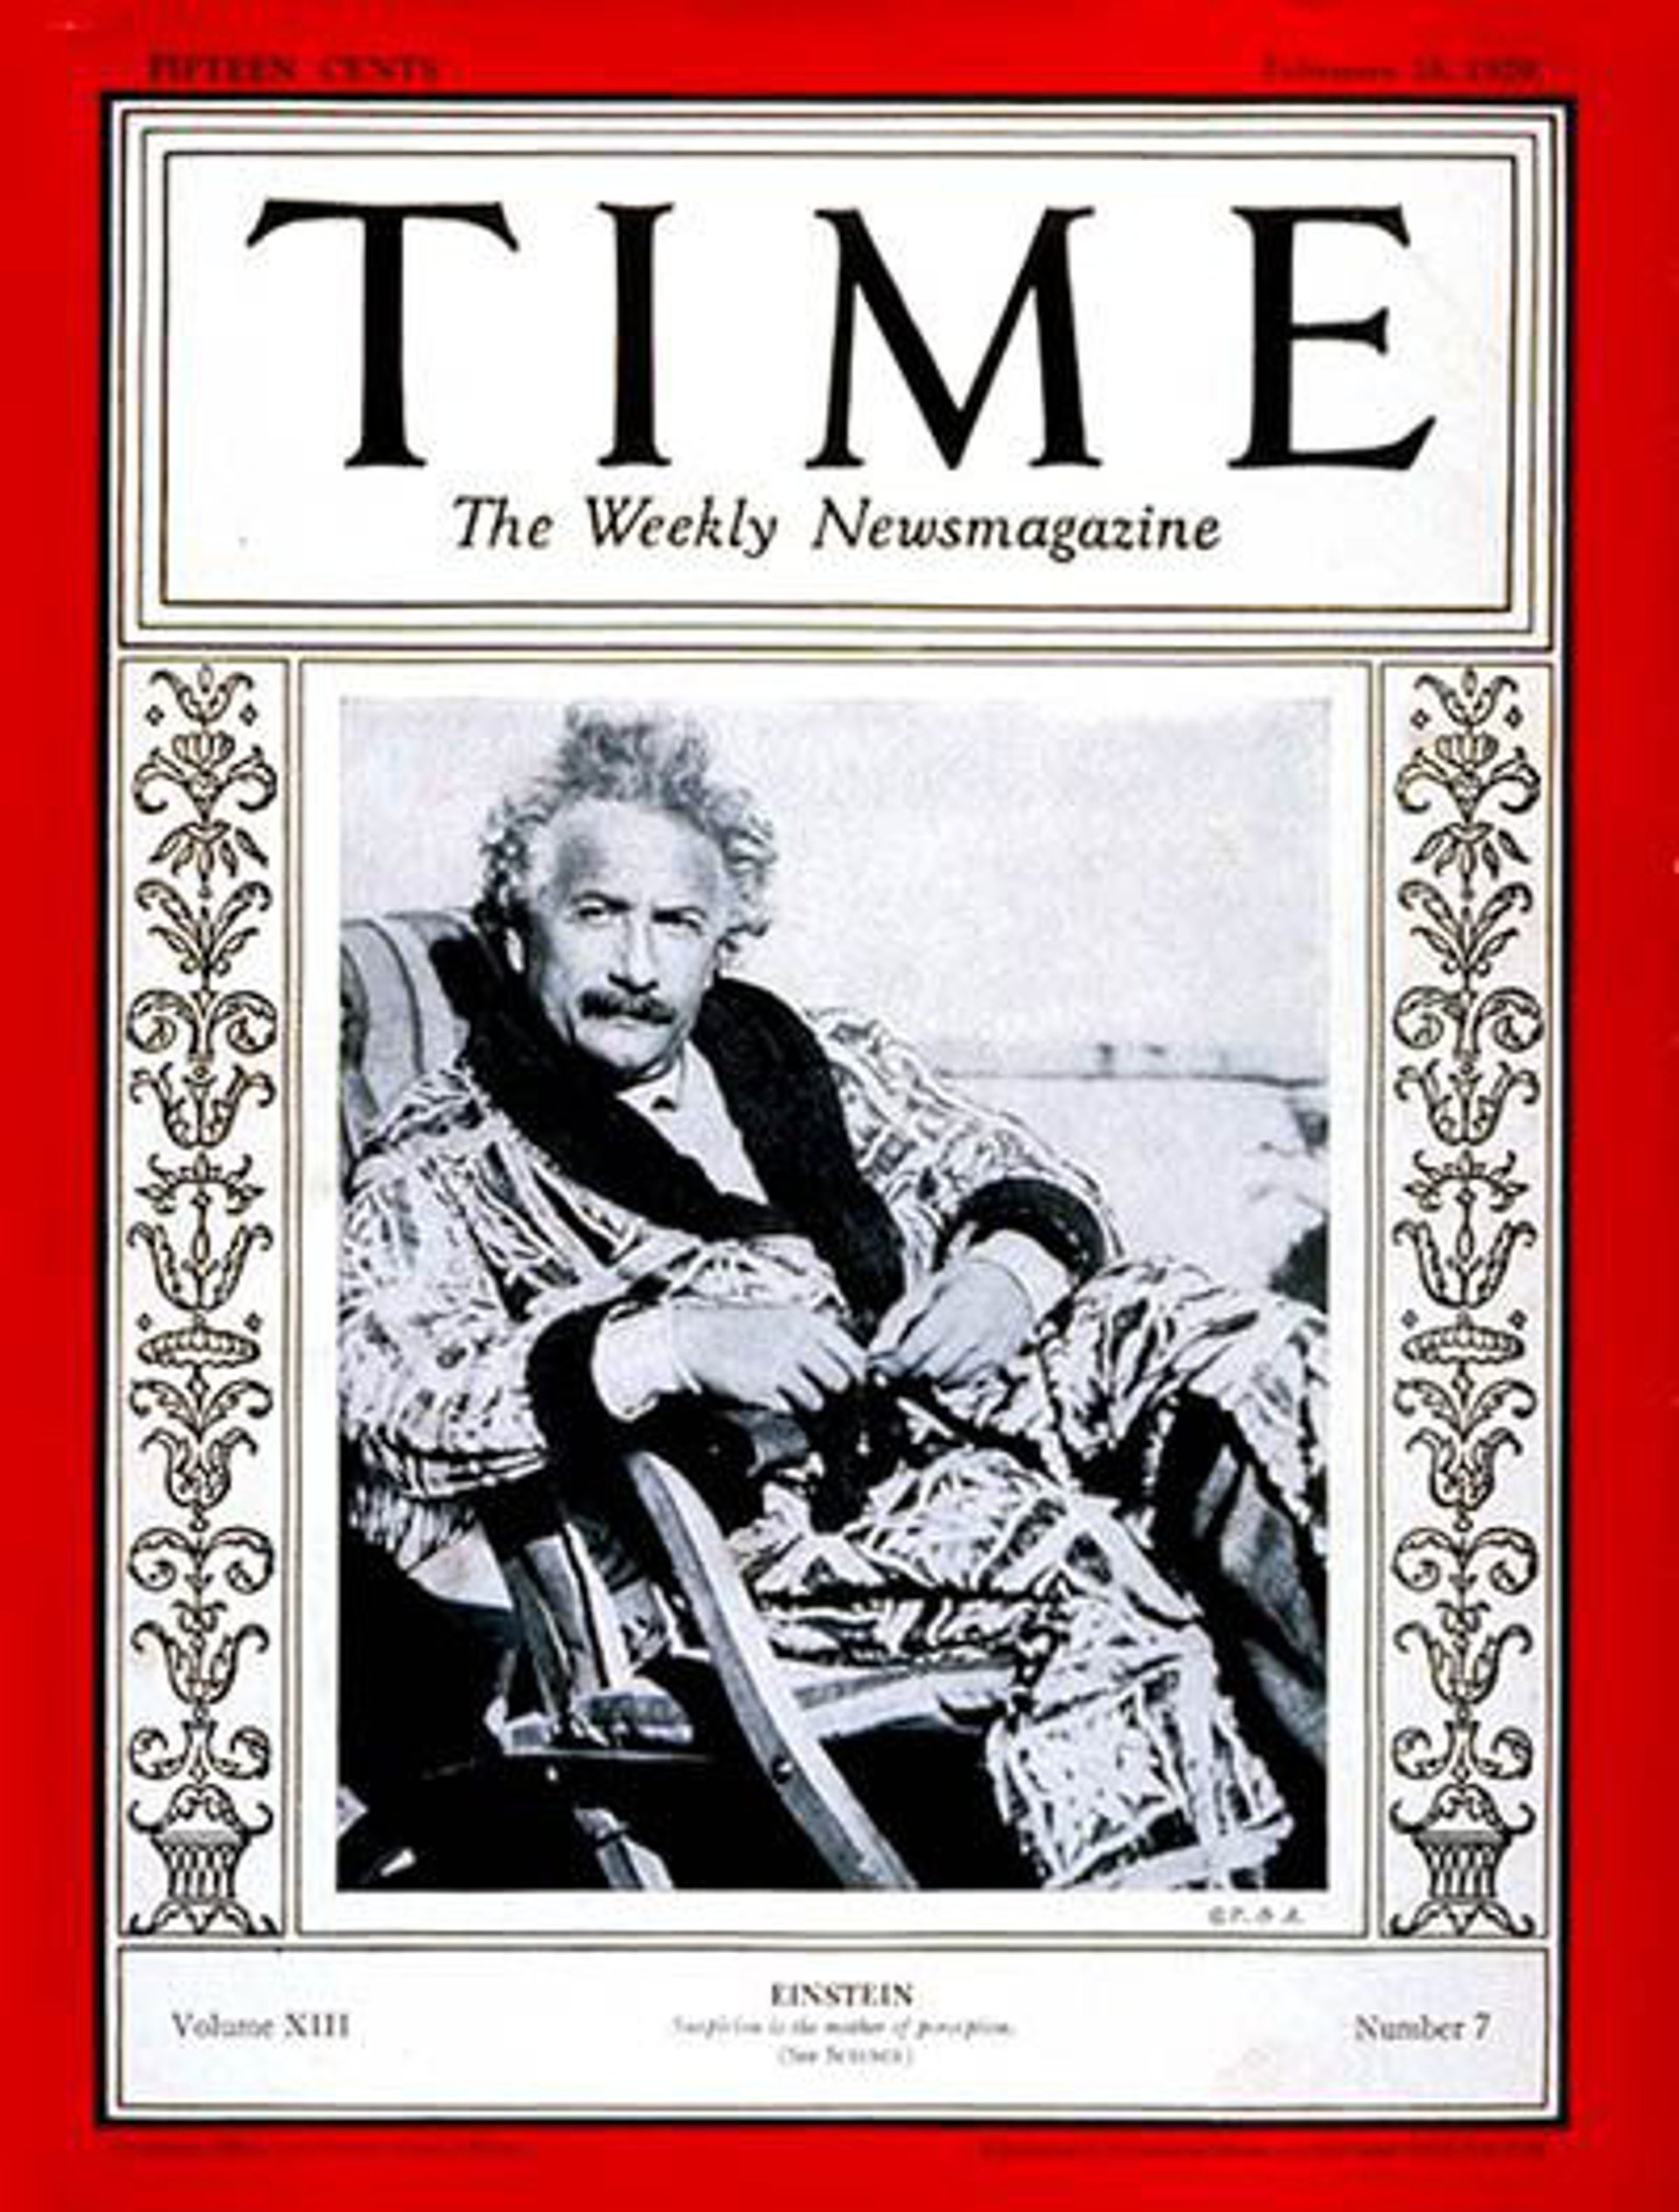 Albert Einstein on the cover of Time, Feb. 18, 1929.